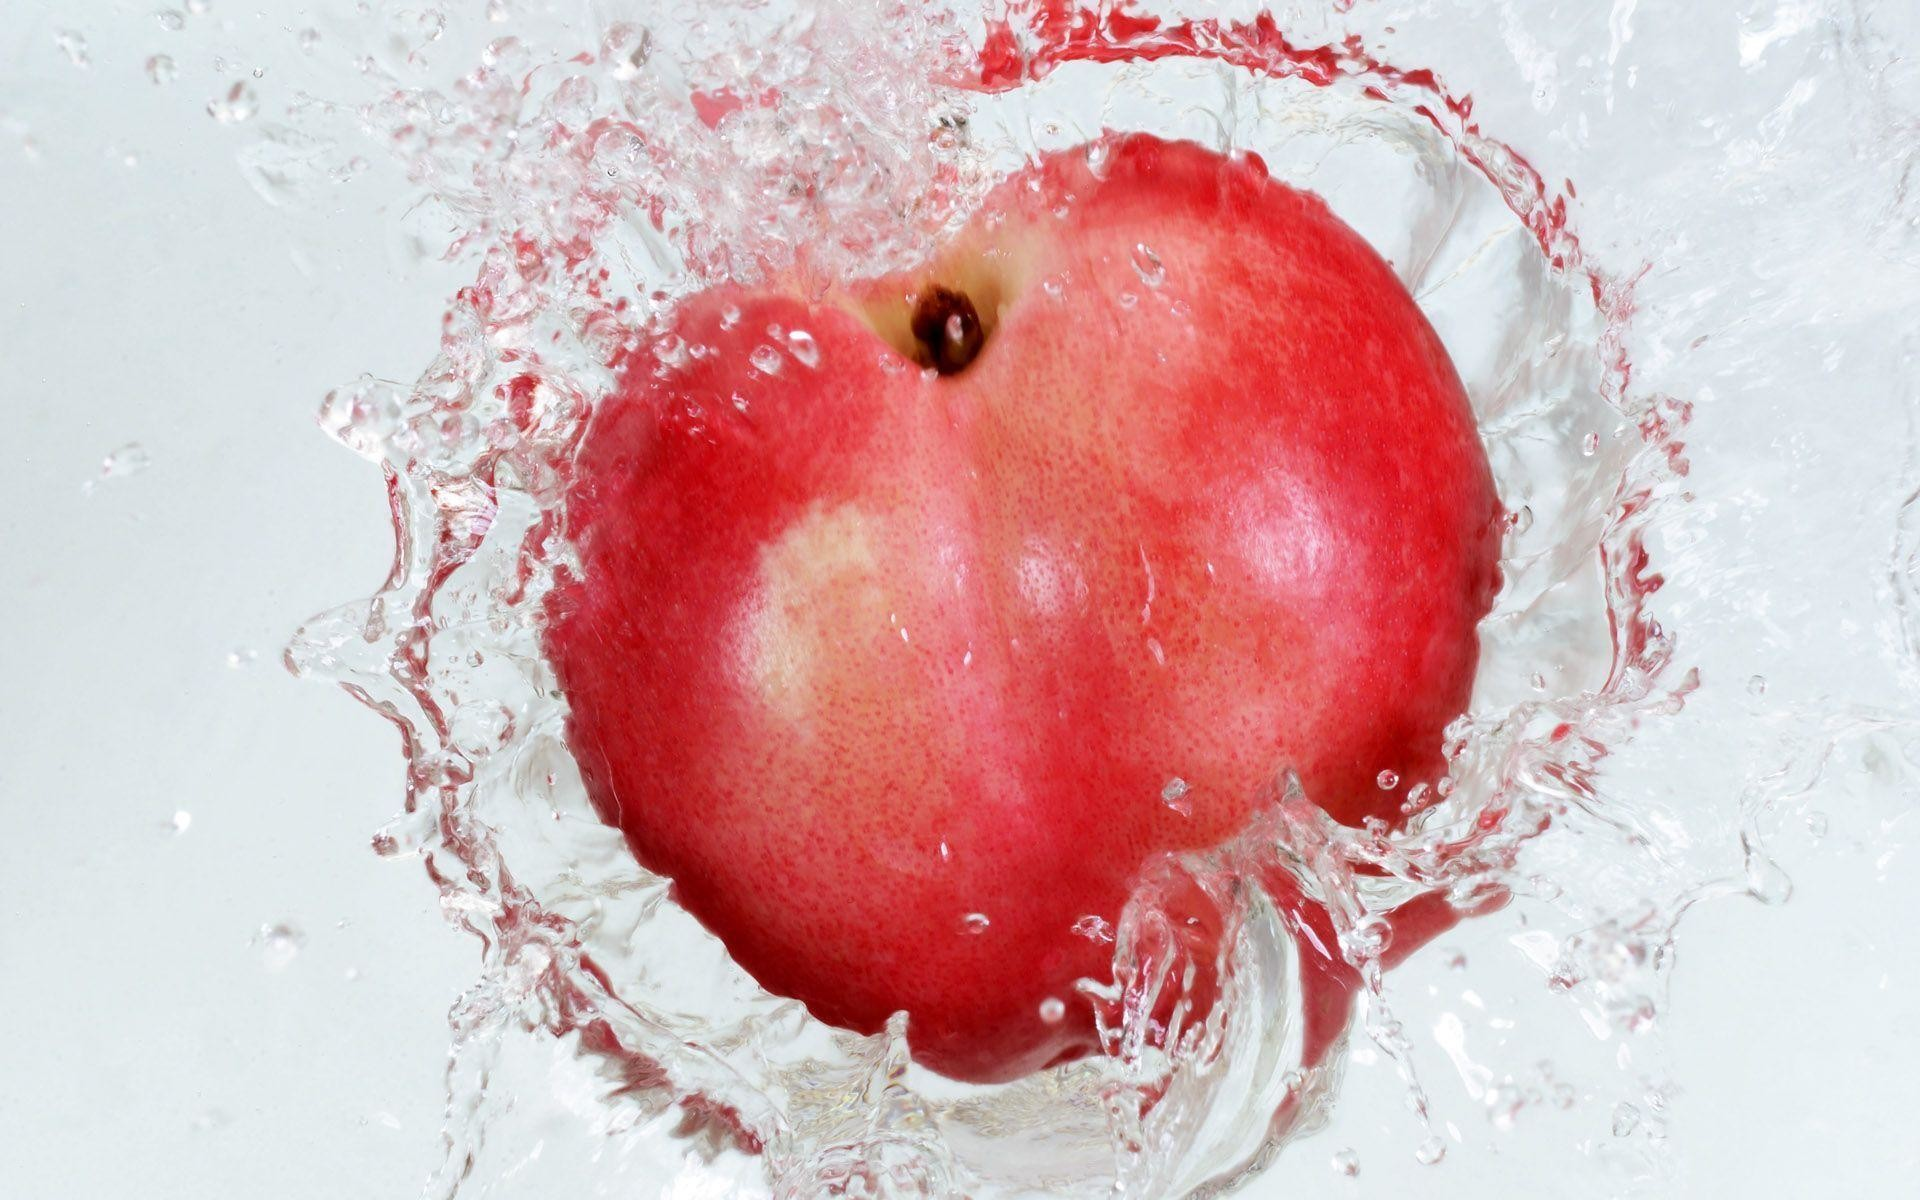 Red Apple Wallpapers 70 Images